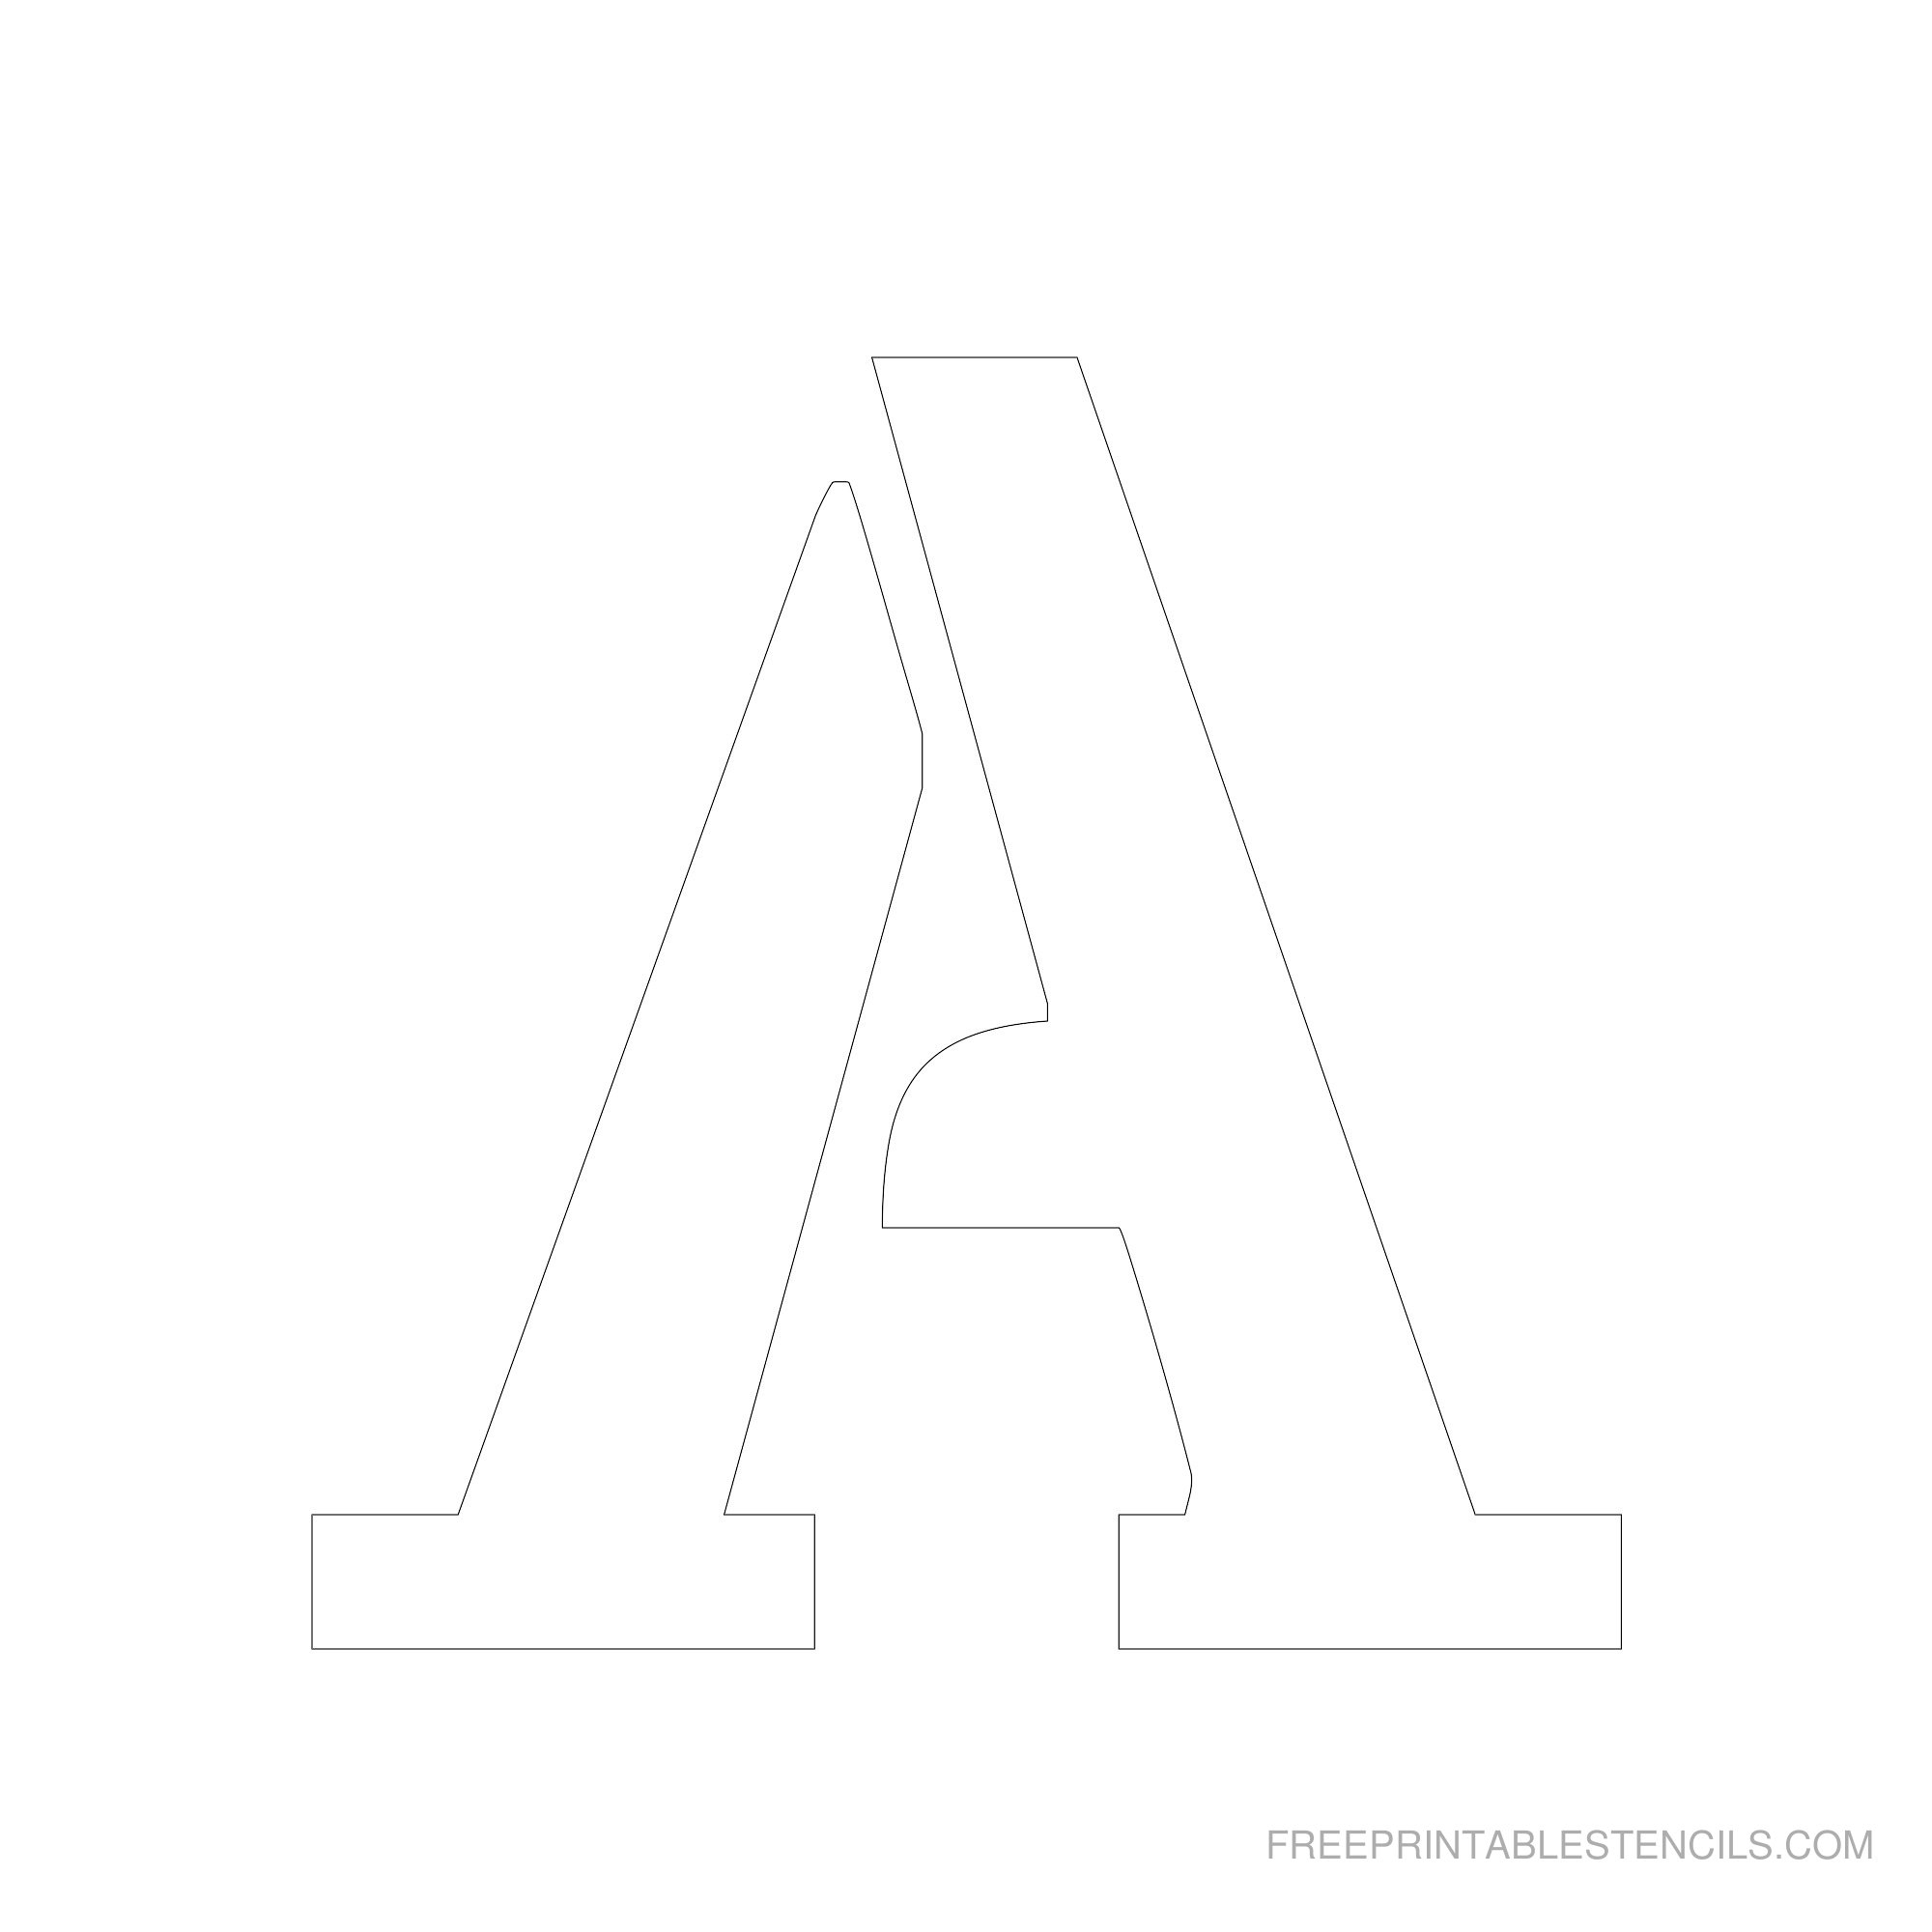 Printable 6 Inch Letter Stencils A-Z | Free Printable Stencils - Free Printable Letter Stencils